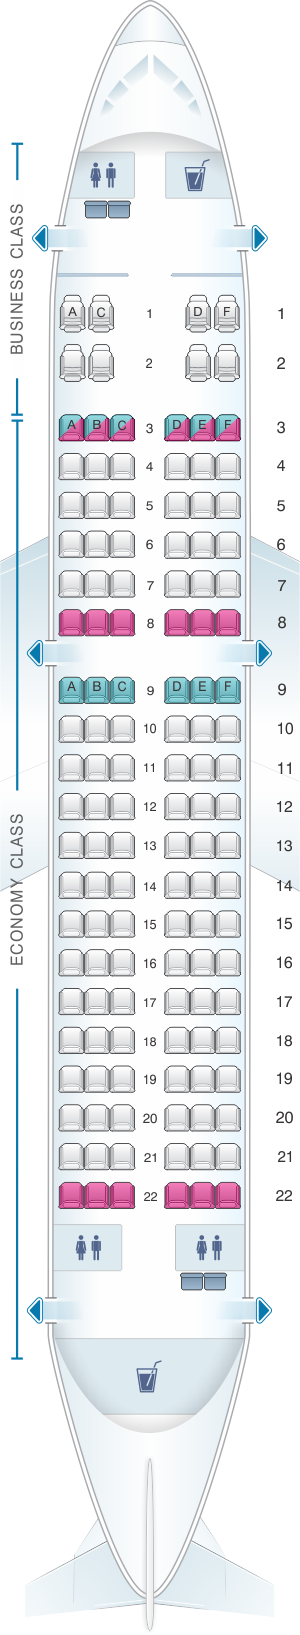 Seat map for Rossiya Airlines Airbus A319 128PAX